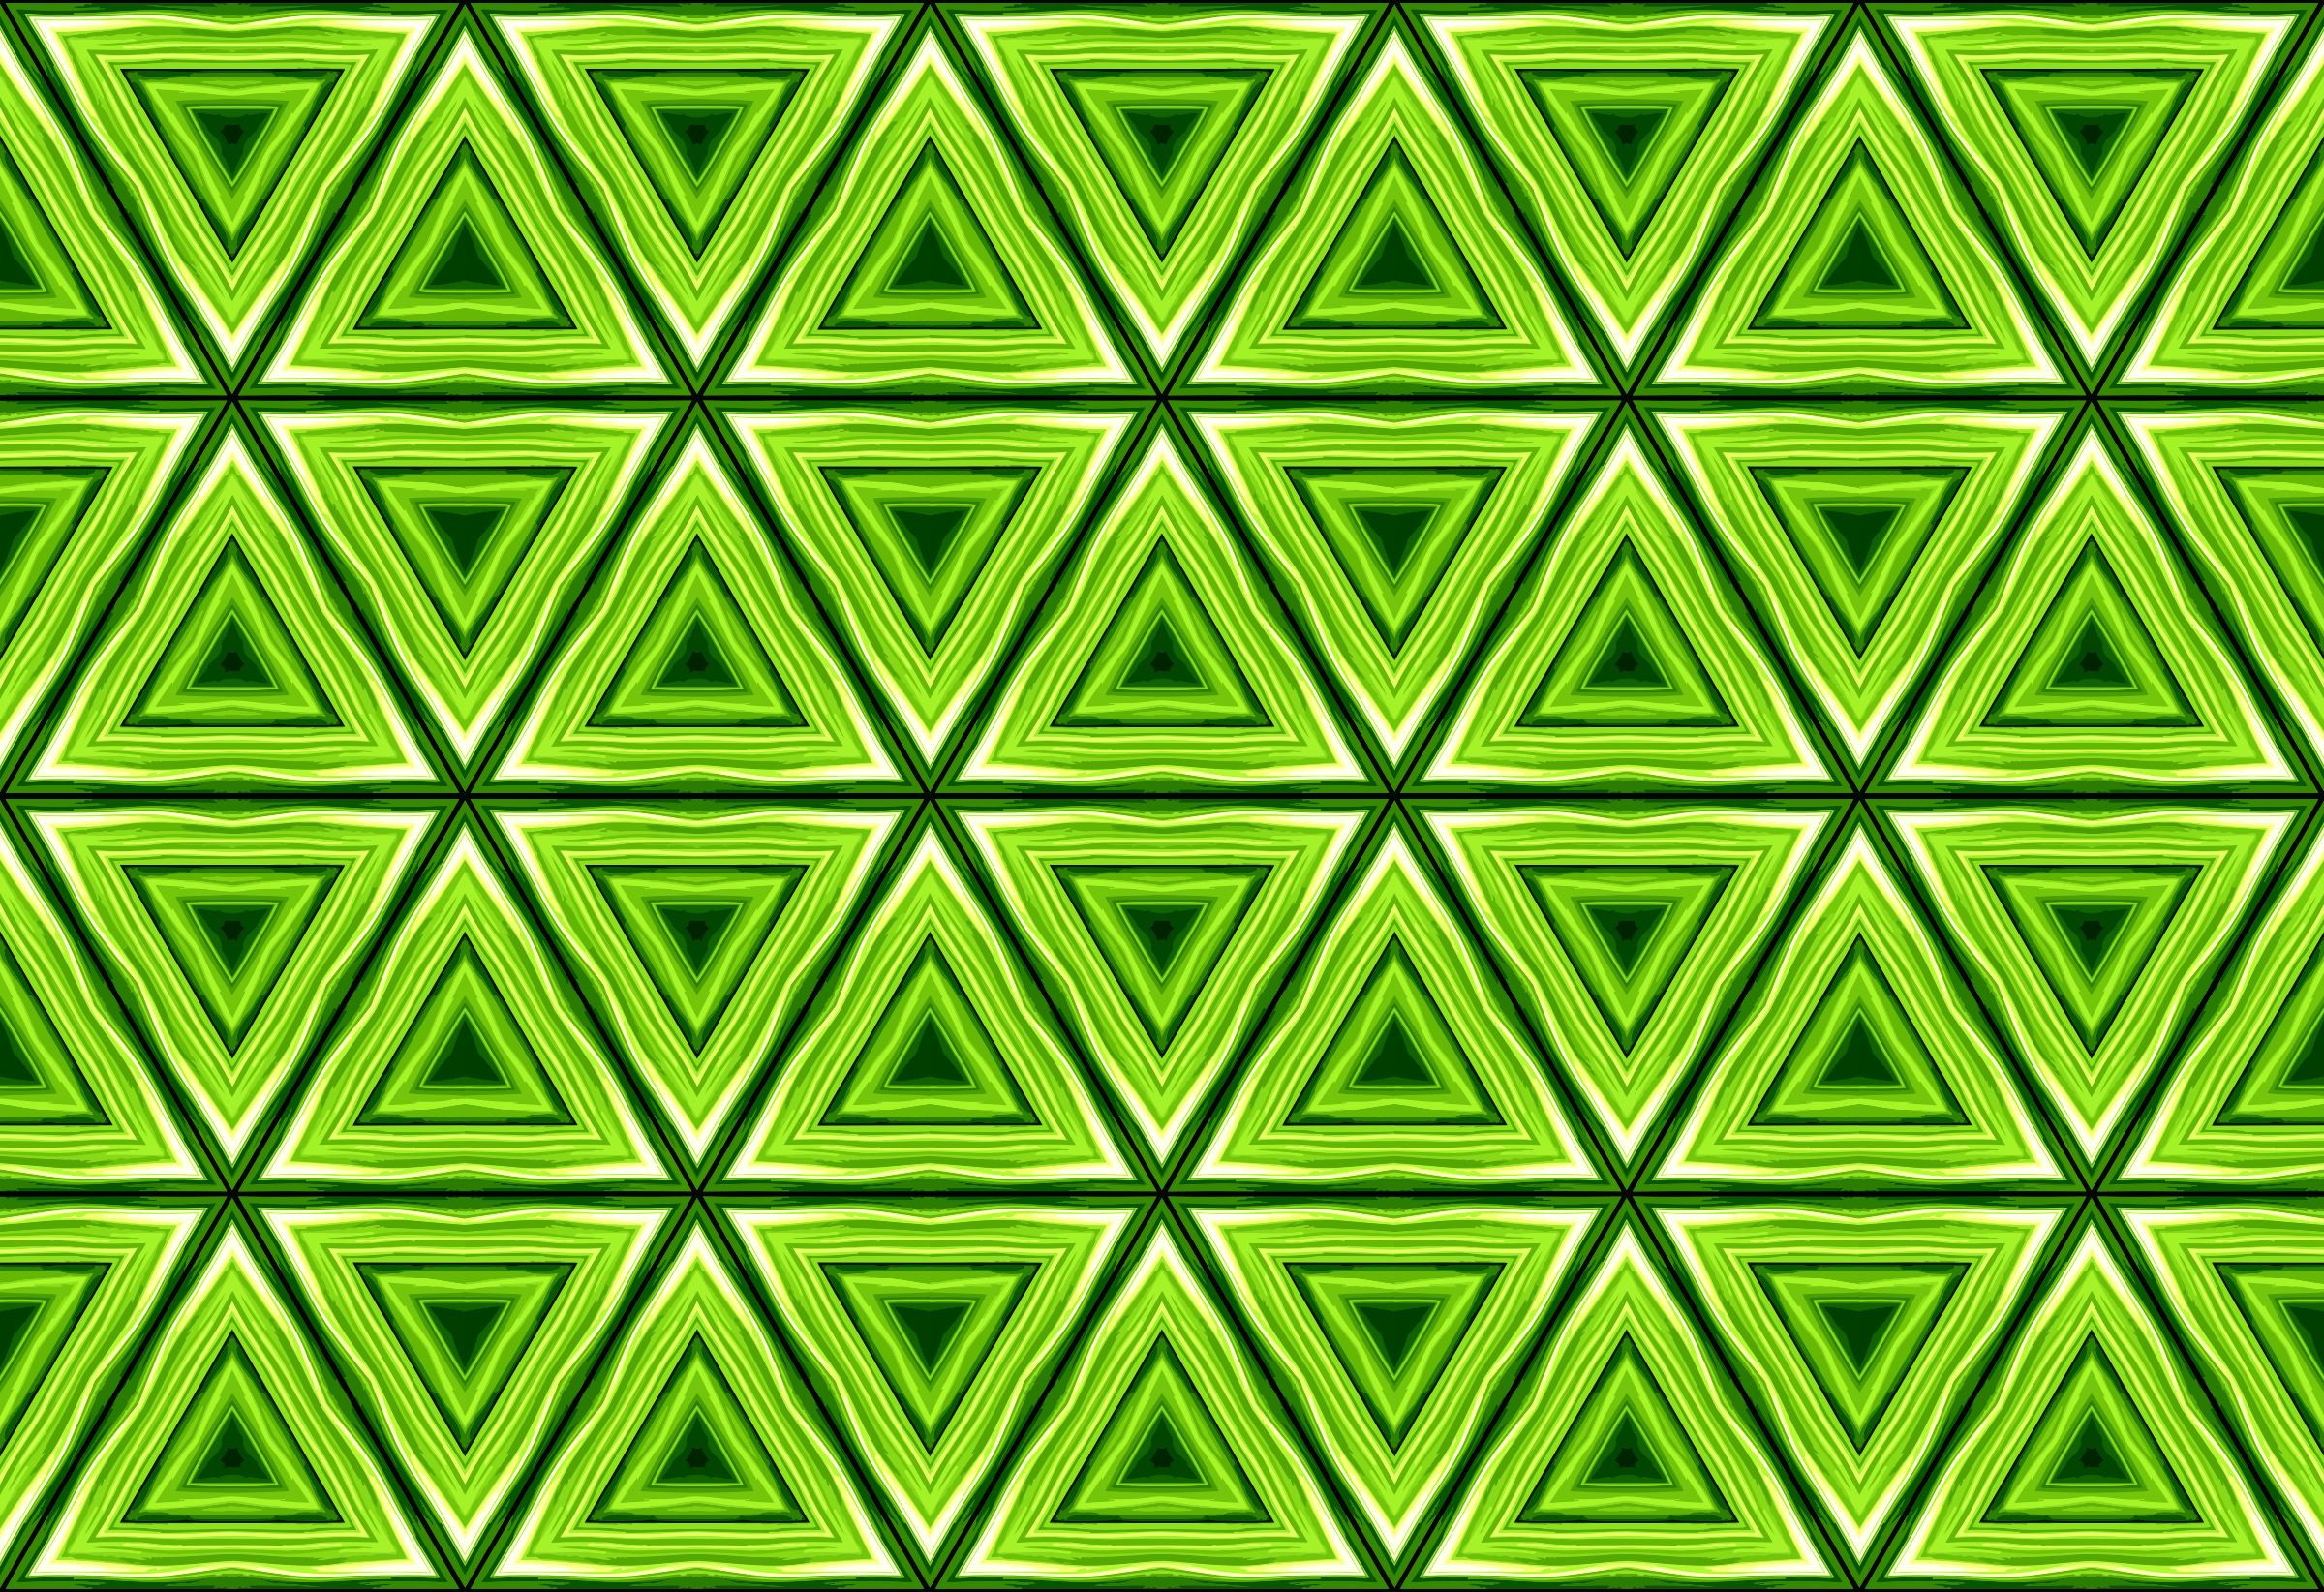 Background pattern 315 (colour 3) by Firkin